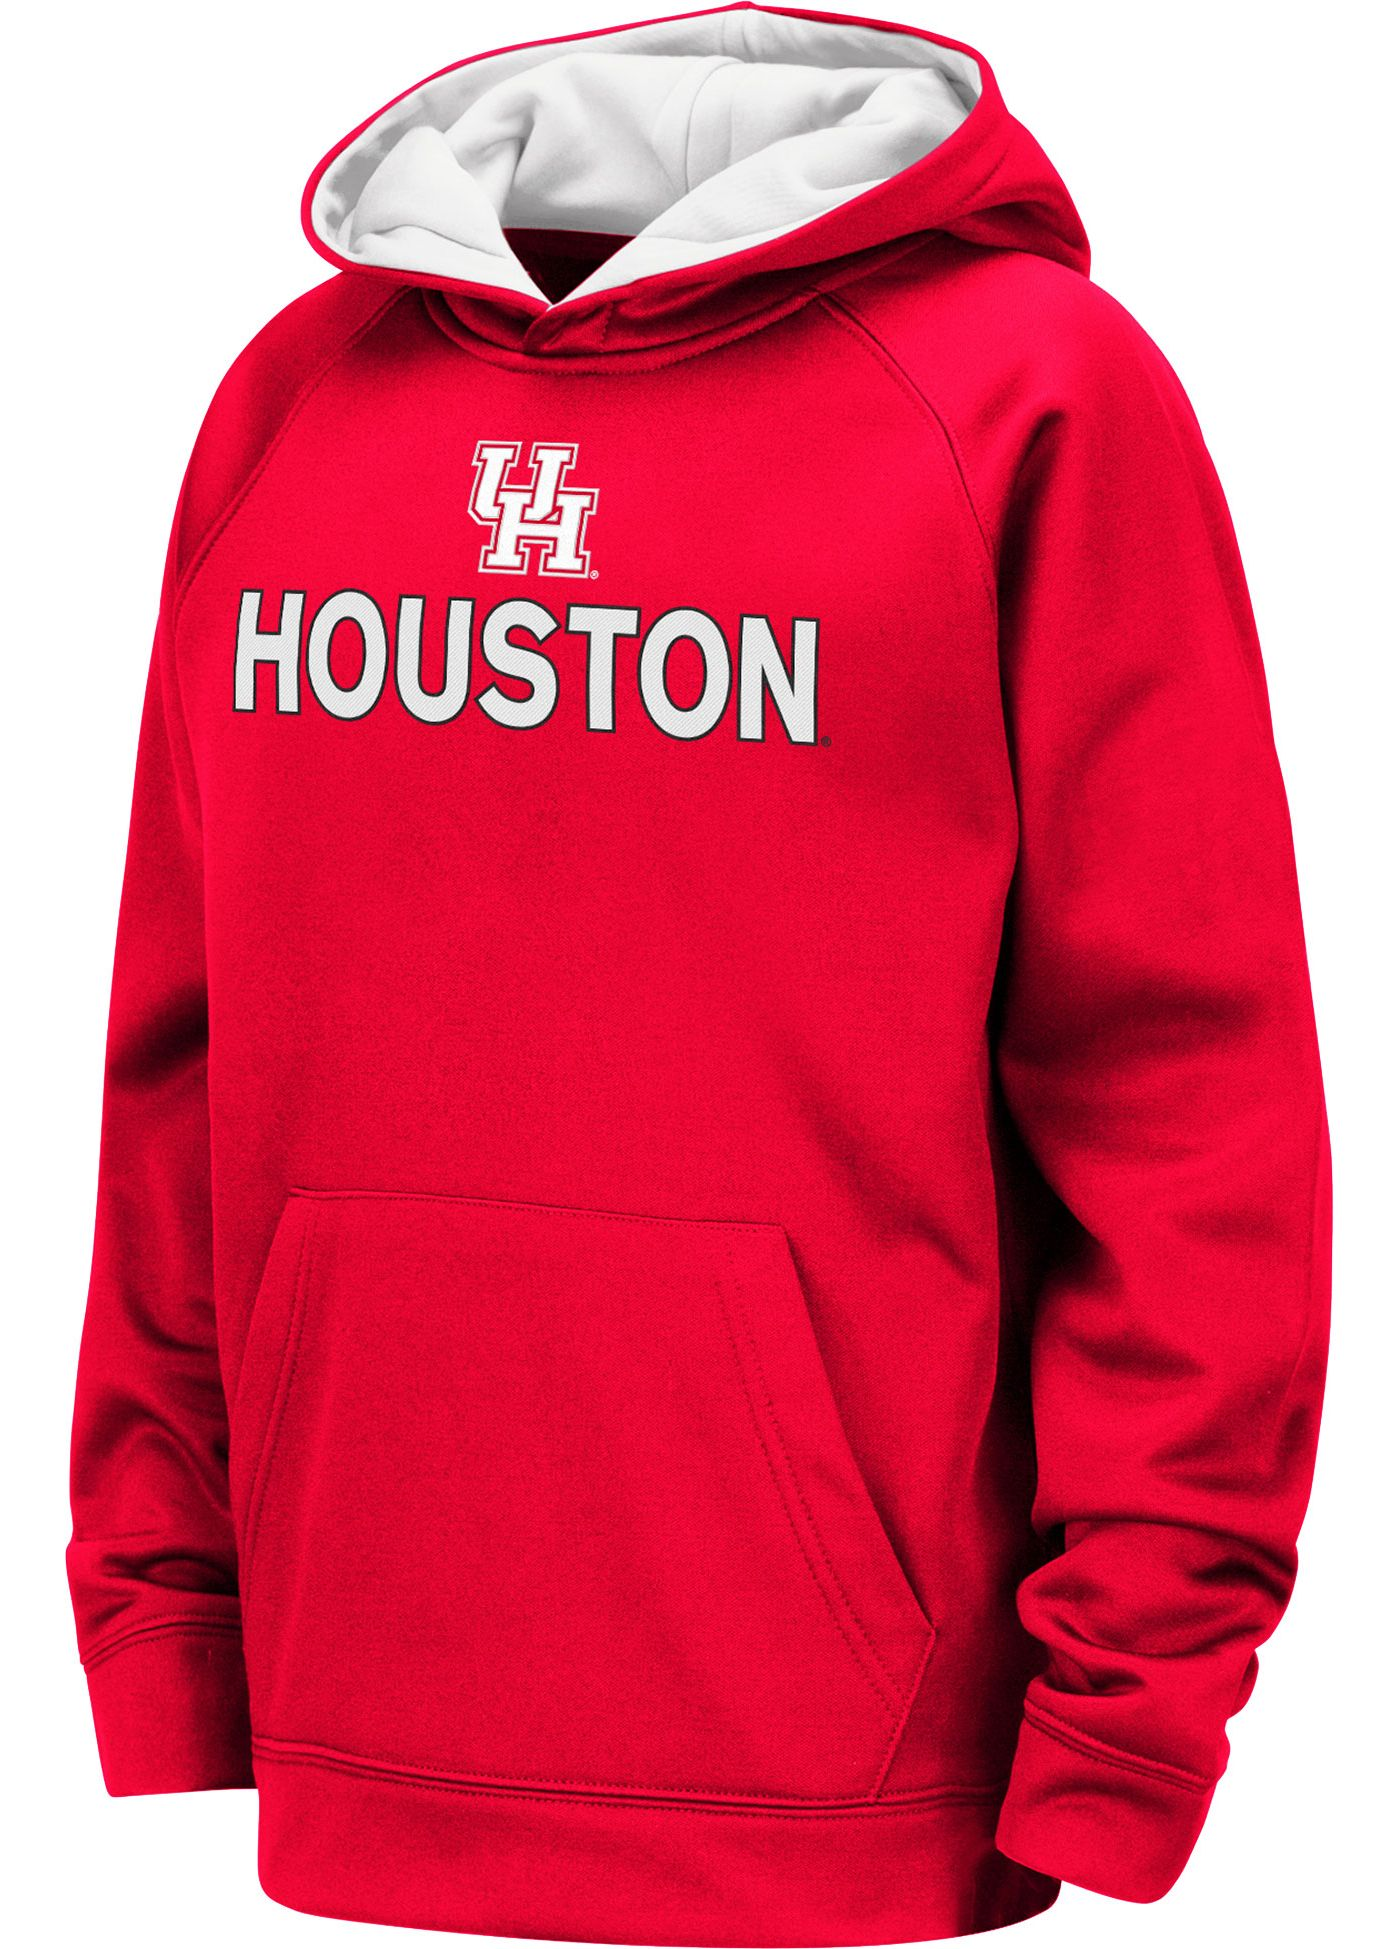 Colosseum Youth Houston Cougars Red Pullover Hoodie